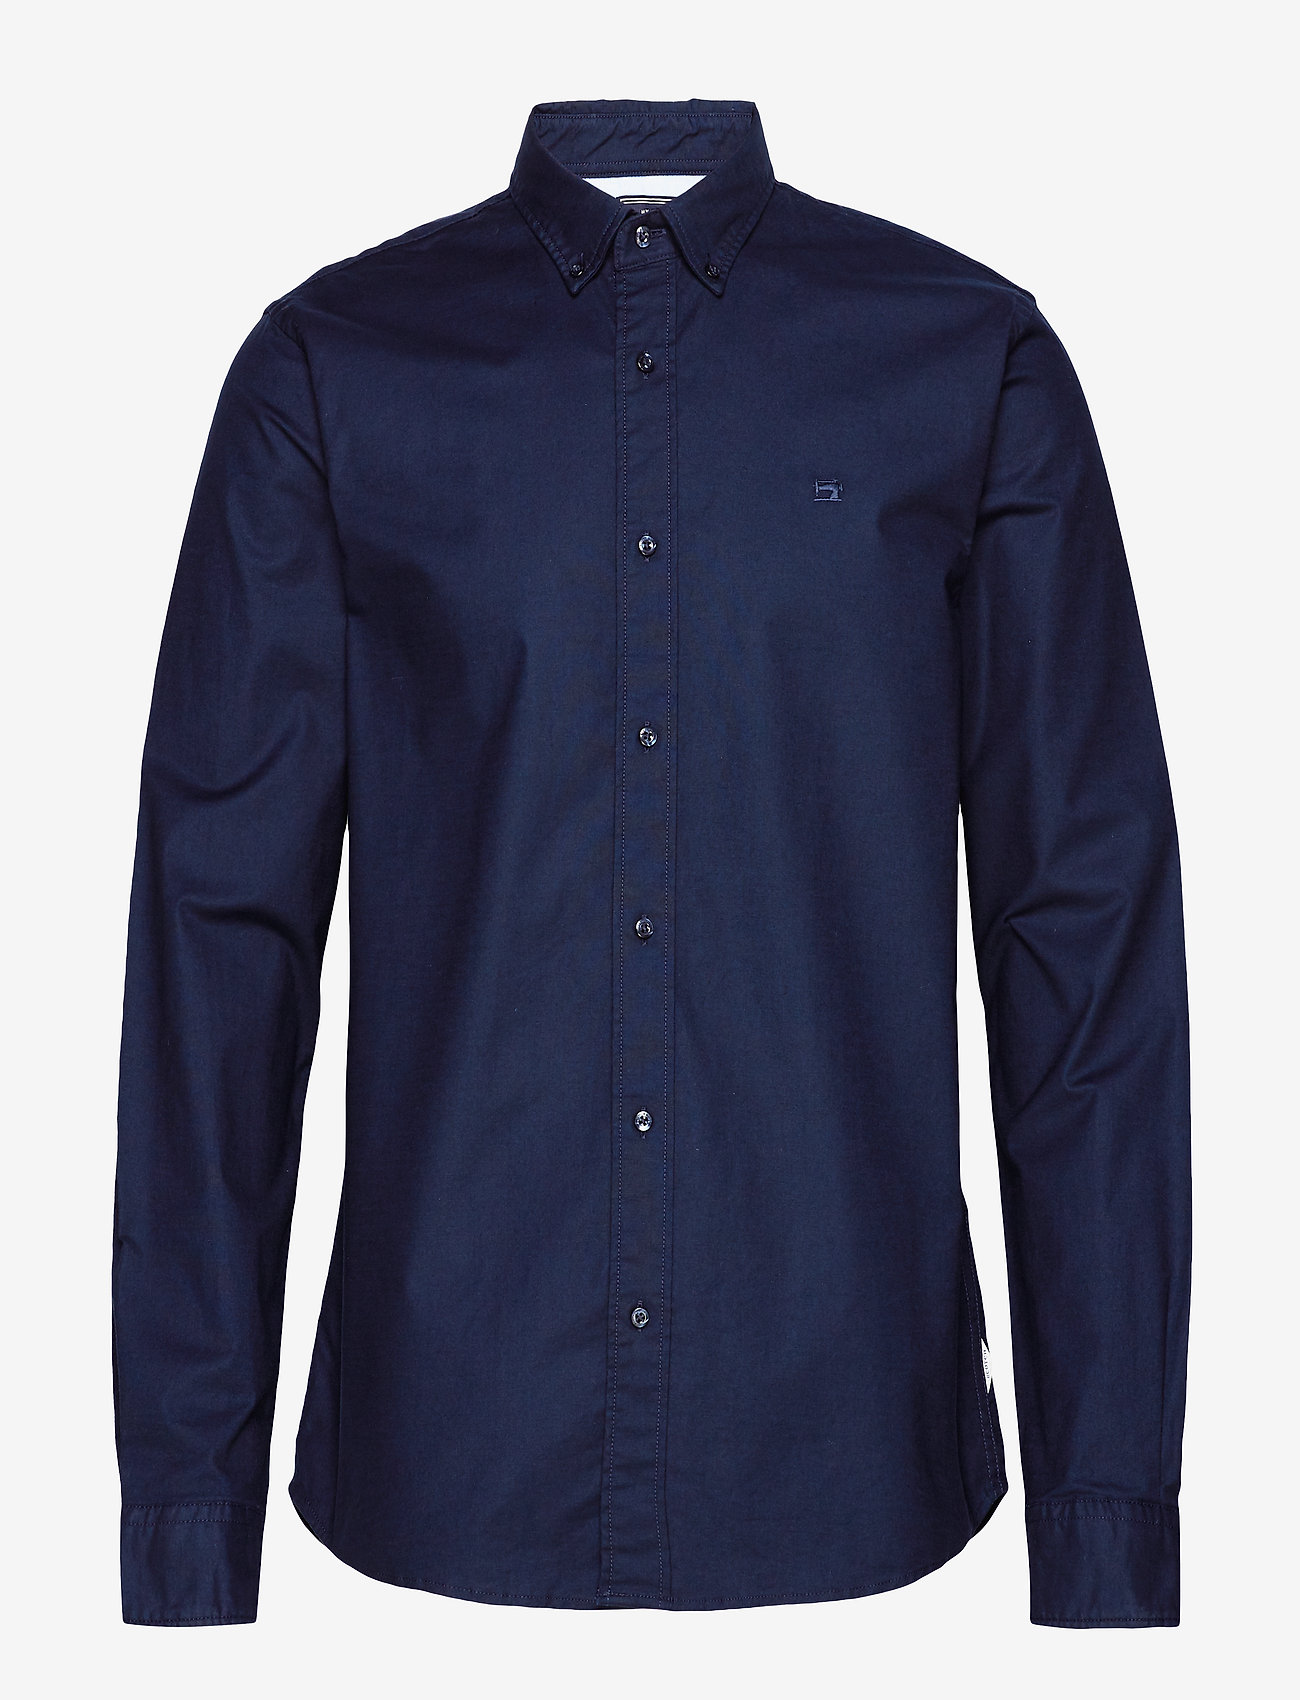 Scotch & Soda - NOS Oxford shirt regular fit button down collar - chemises basiques - night - 0